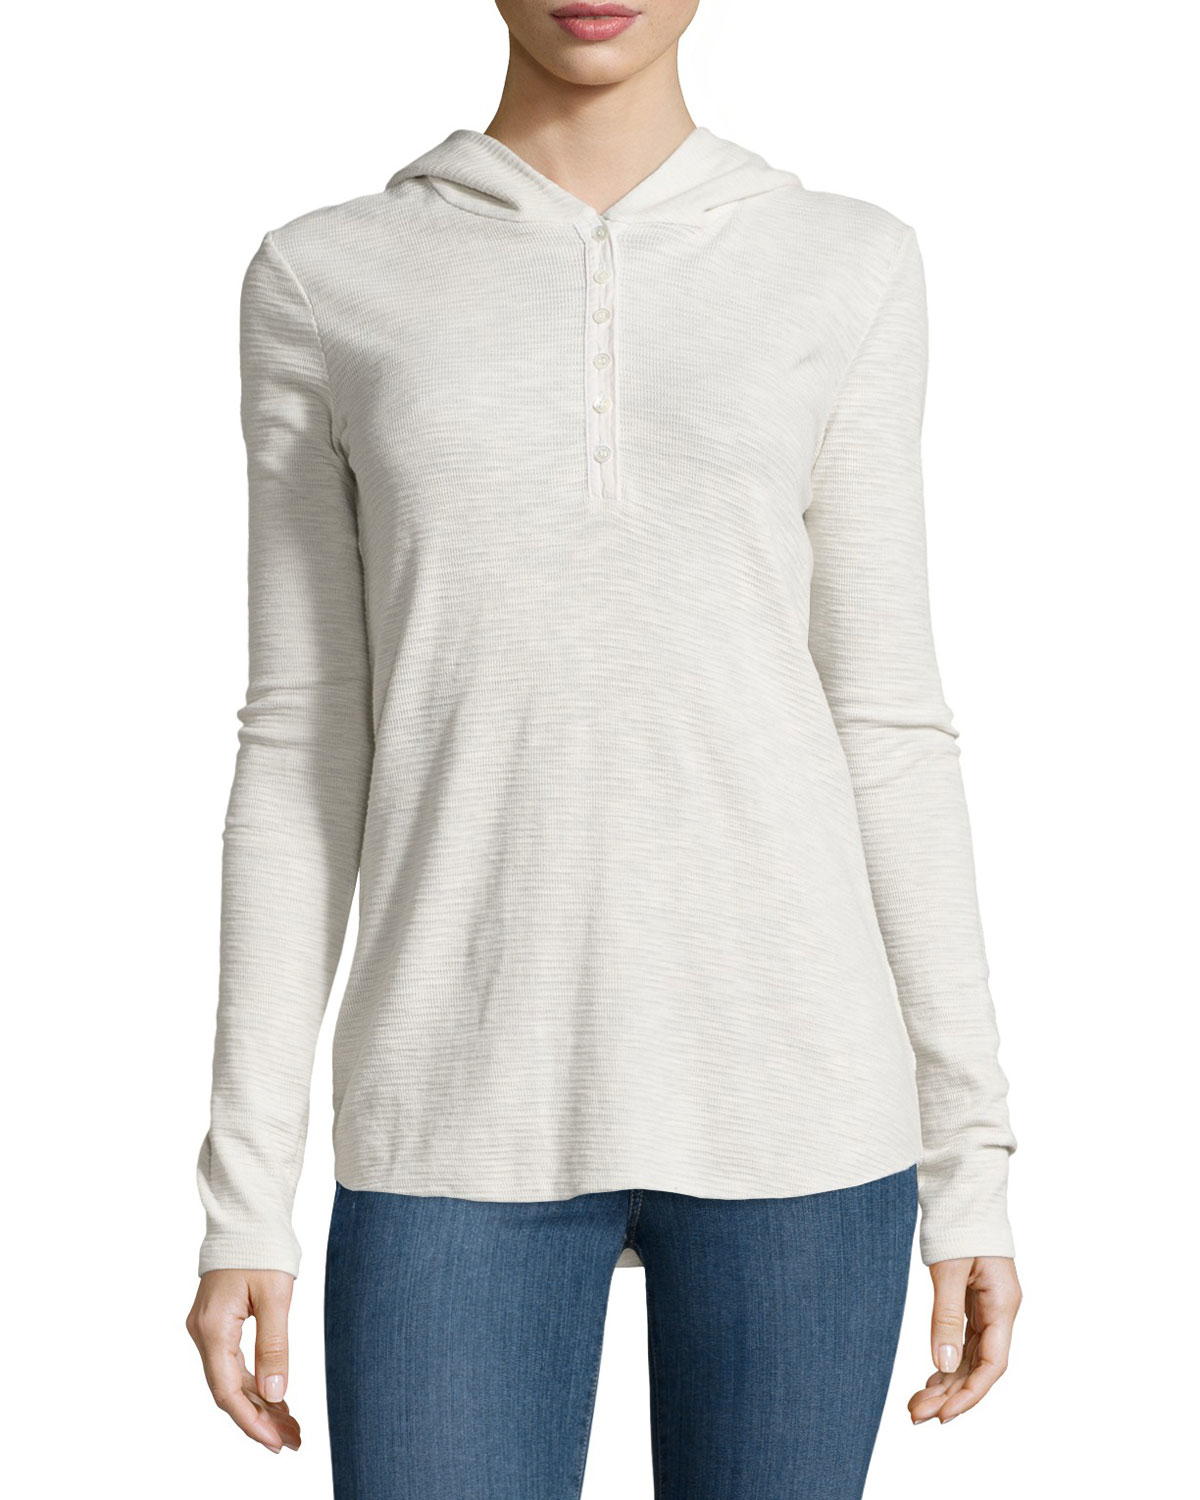 James perse thermal hooded henley in natural lyst for James perse henley shirt